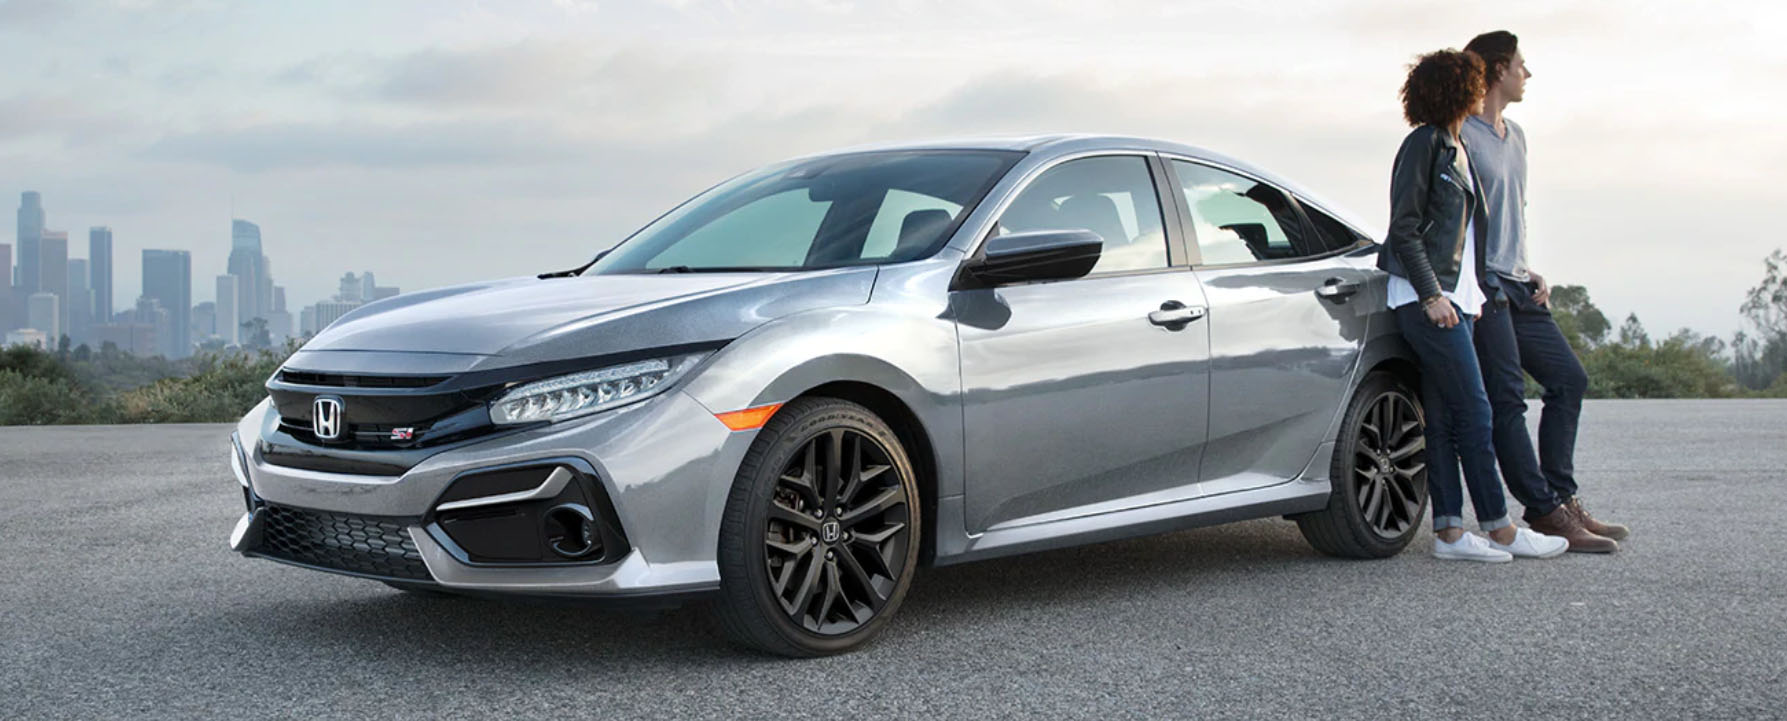 2020 Honda Civic Si Sedan For Sale in Everett